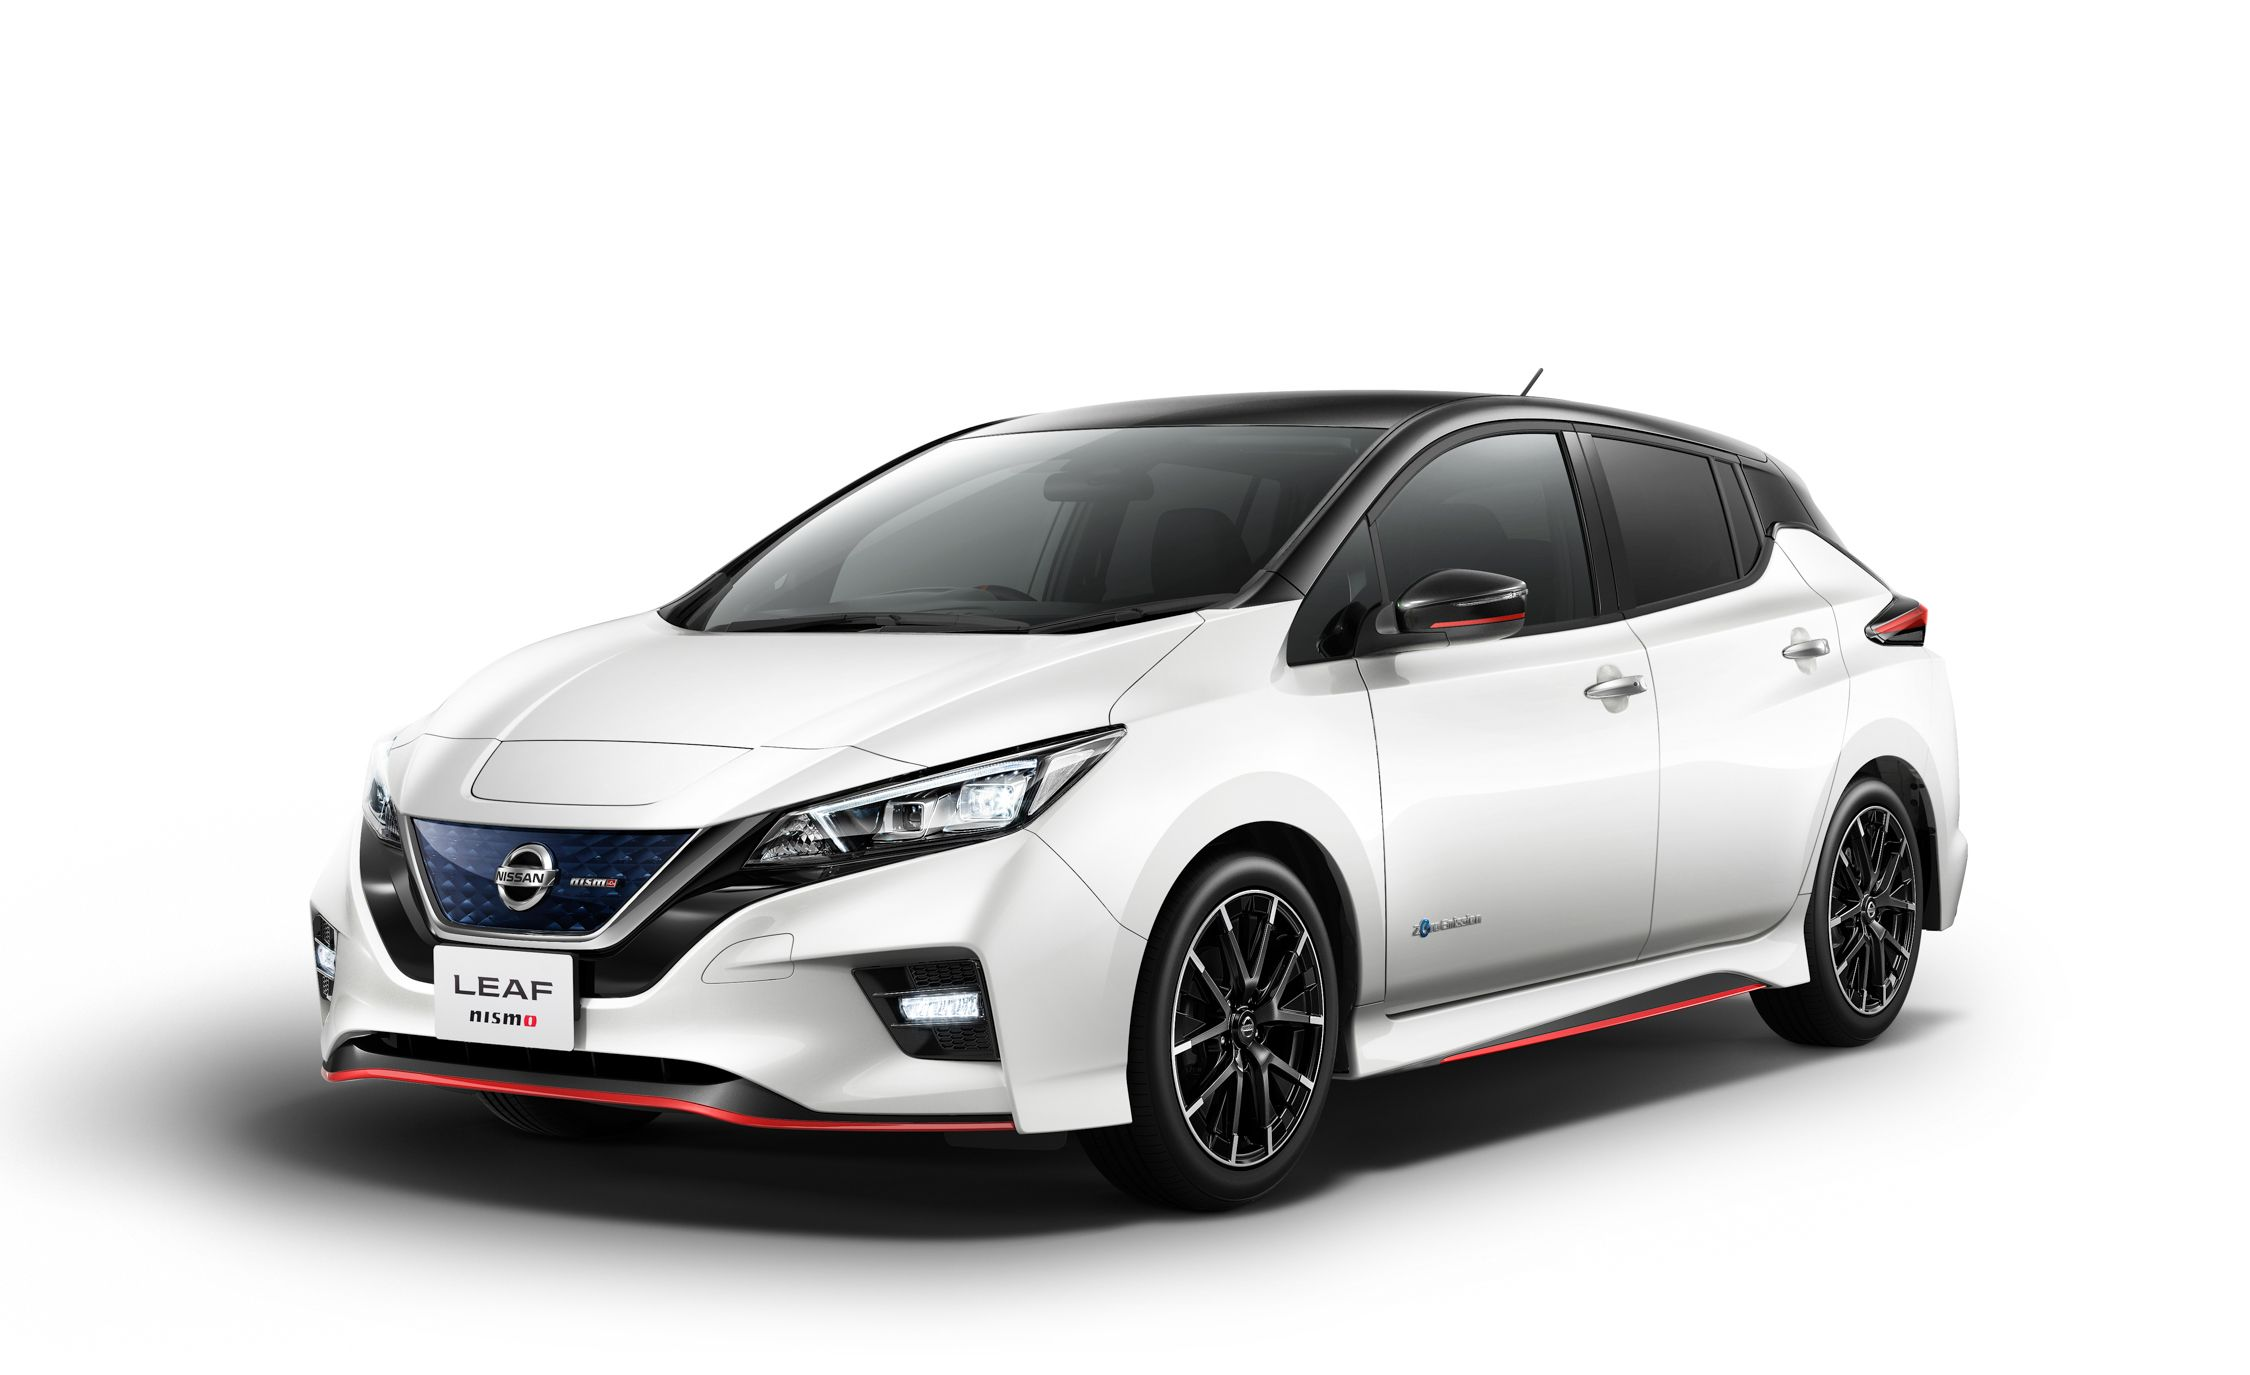 Nissan Leaf NISMO Adds Sporty Style, Though Not Much Actual Sportiness